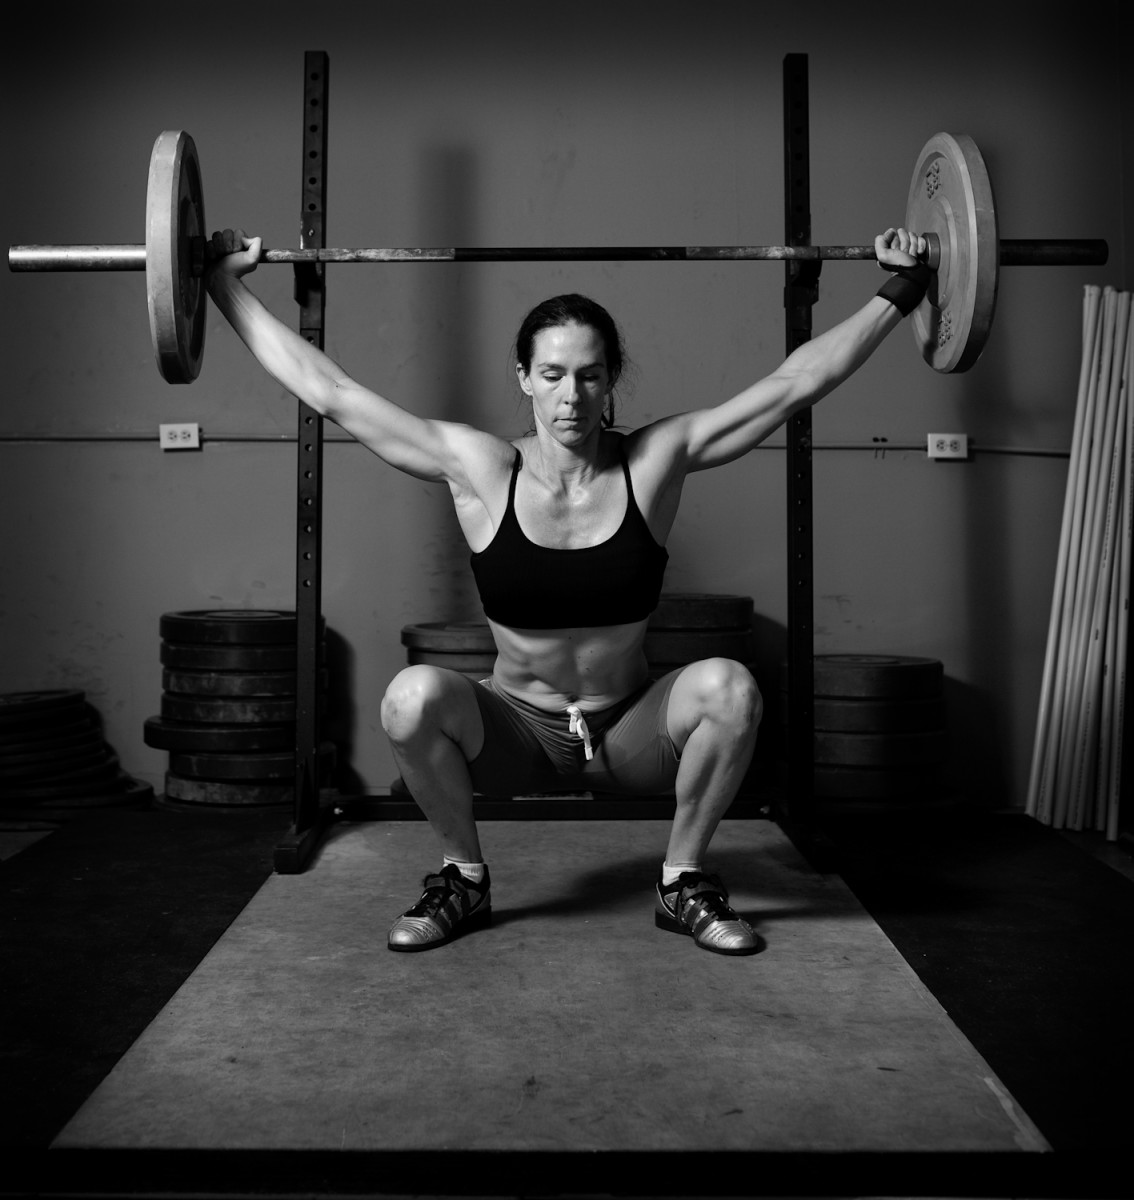 While weight lifting is an excellent exercise, if you use the improper technique you can hurt your back.